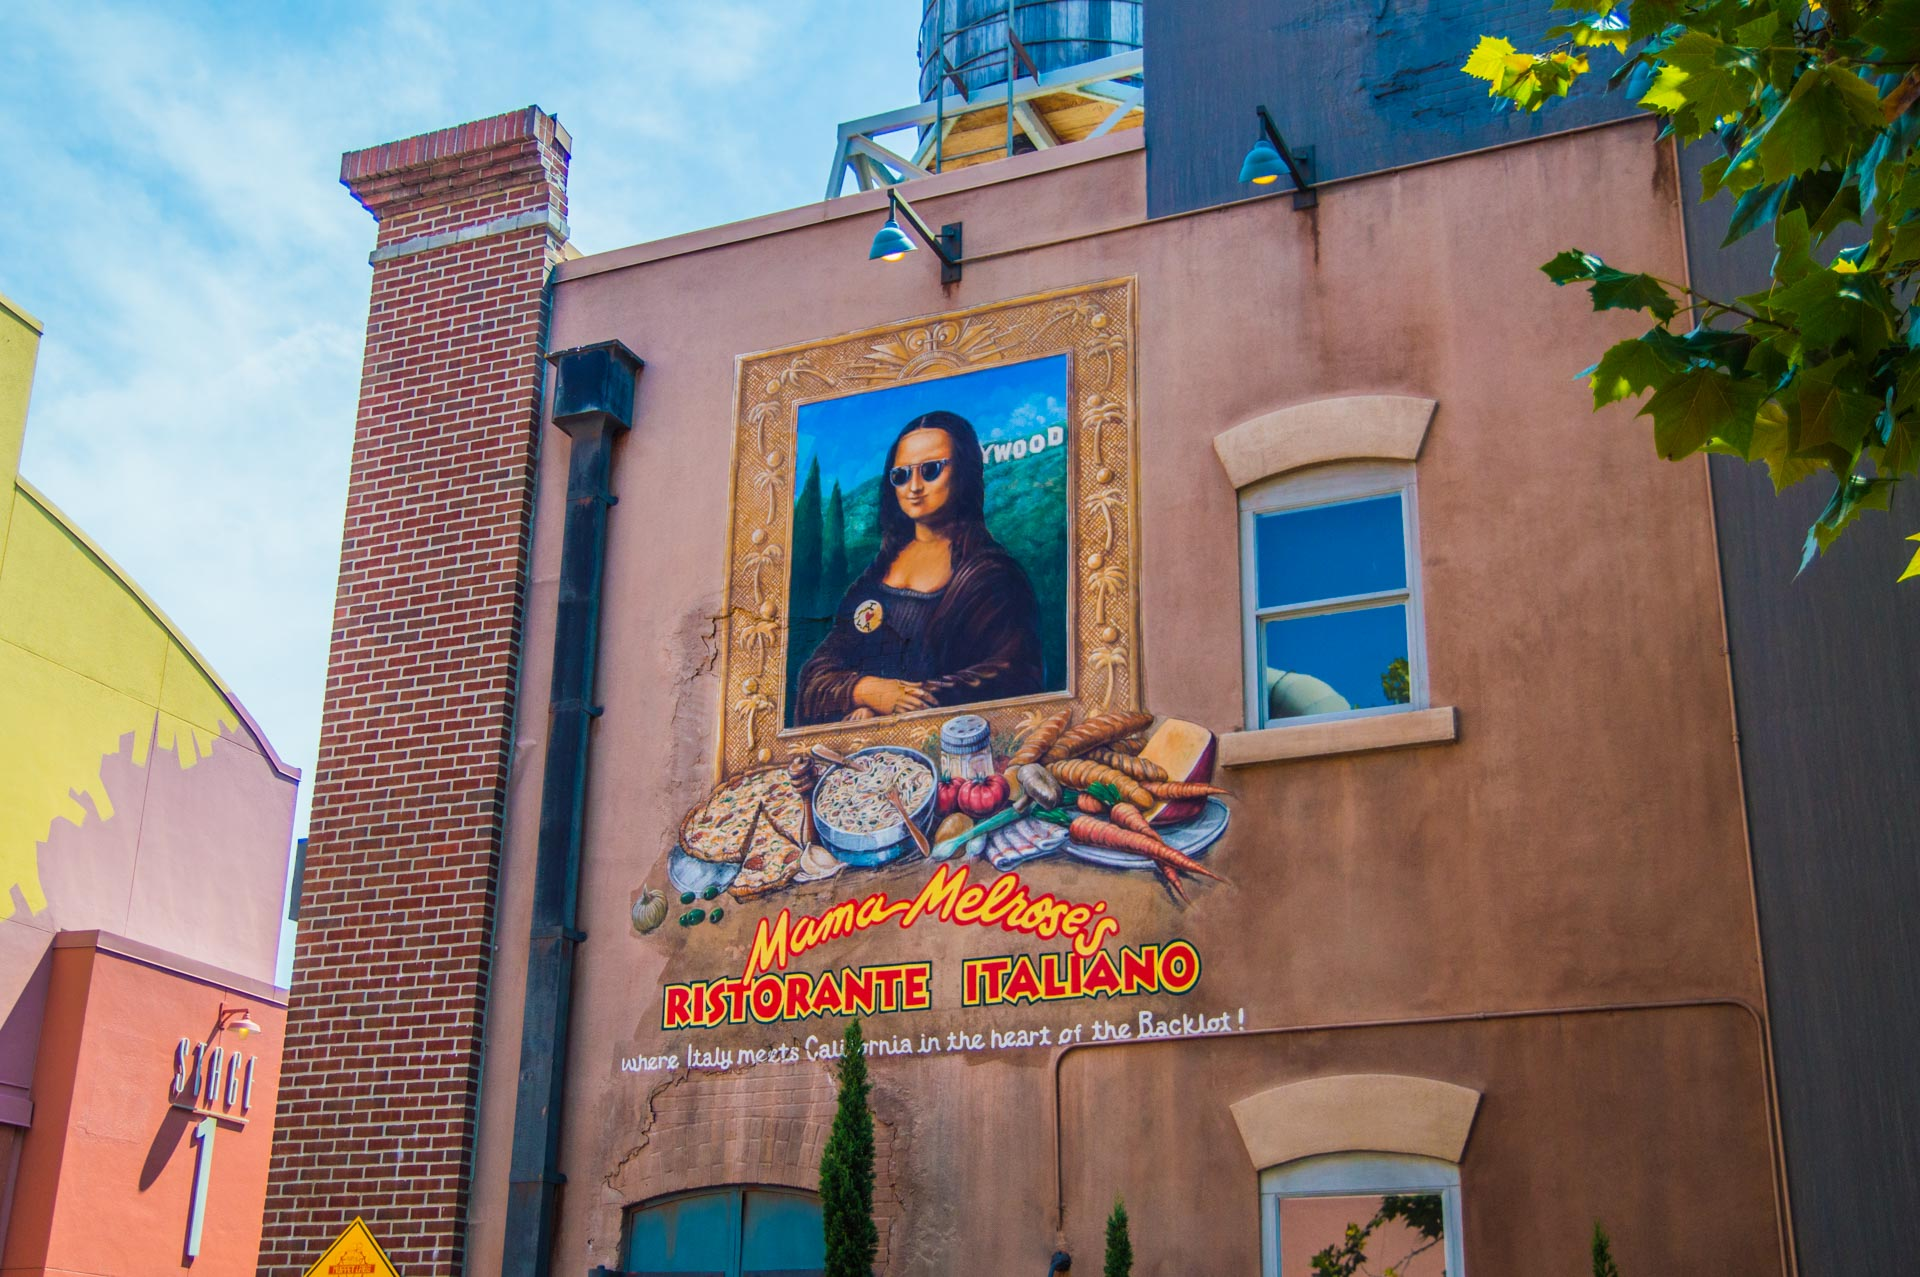 hidden places of hollywood studios the bucket list narratives plus hollywood studios is not known for having a ton of great dining options unlike the other parks so this tends to be your best bet